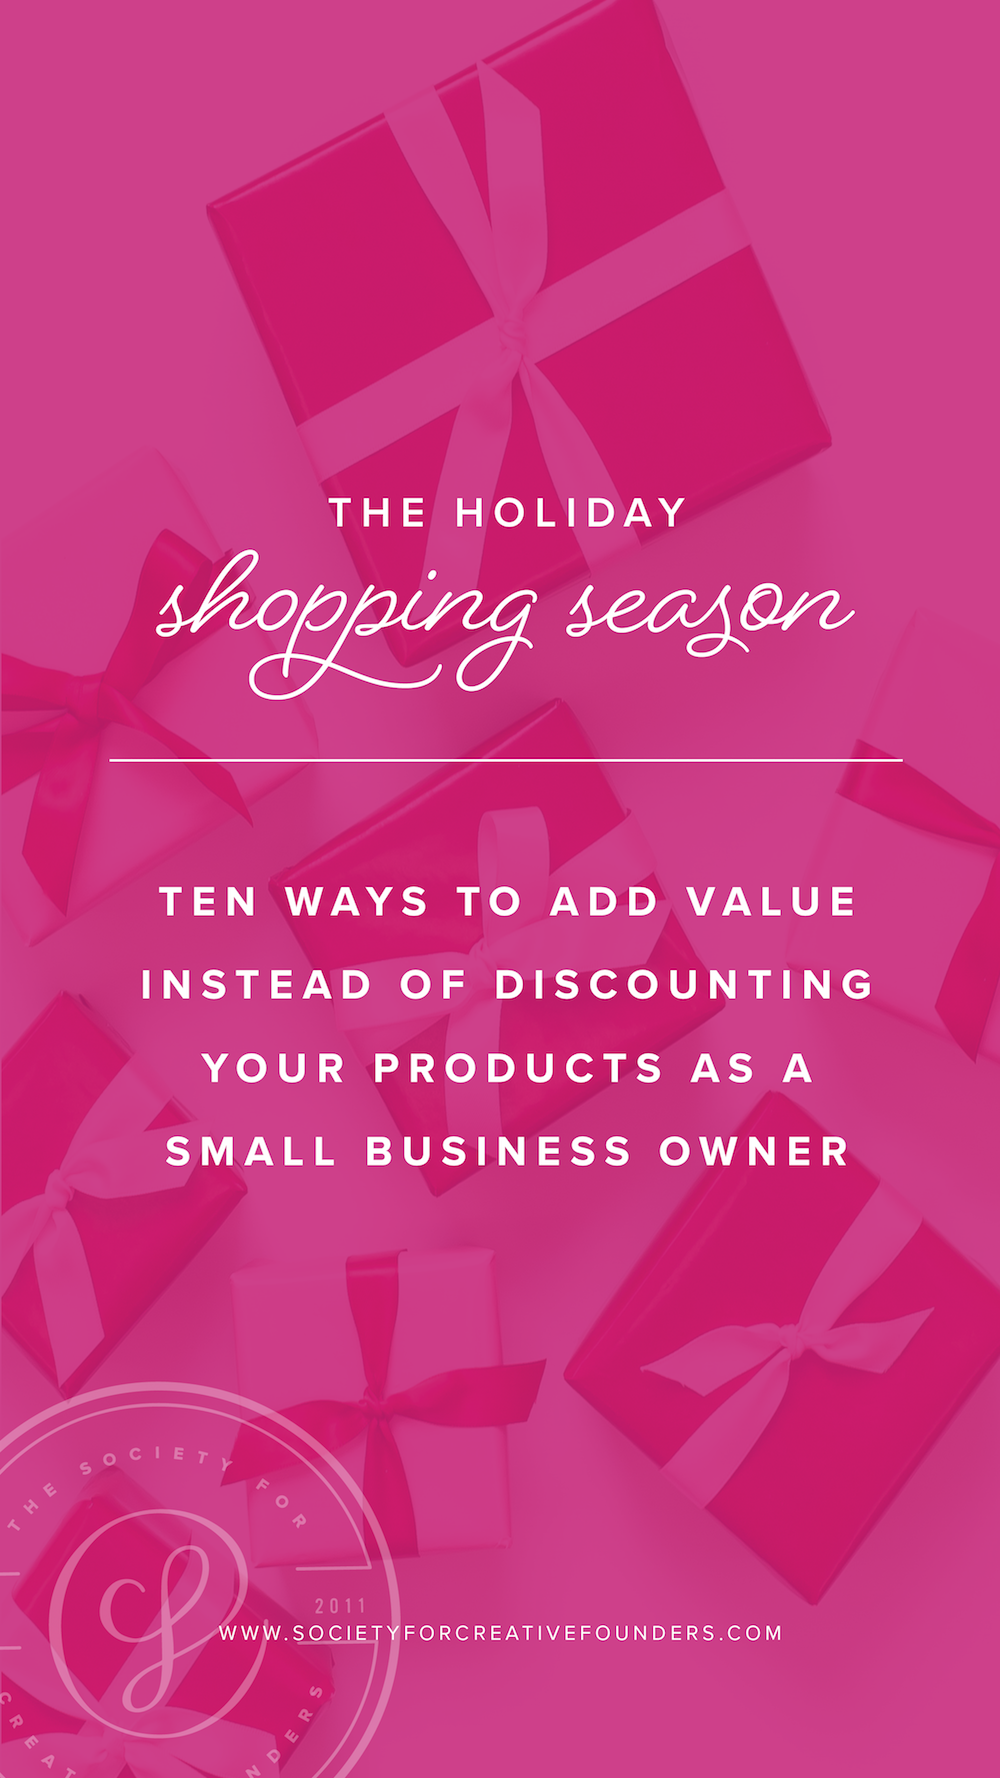 Shop Small Saturday Ideas for Small Business Owners - 10 Ways to Add Value - Society for Creative Founders